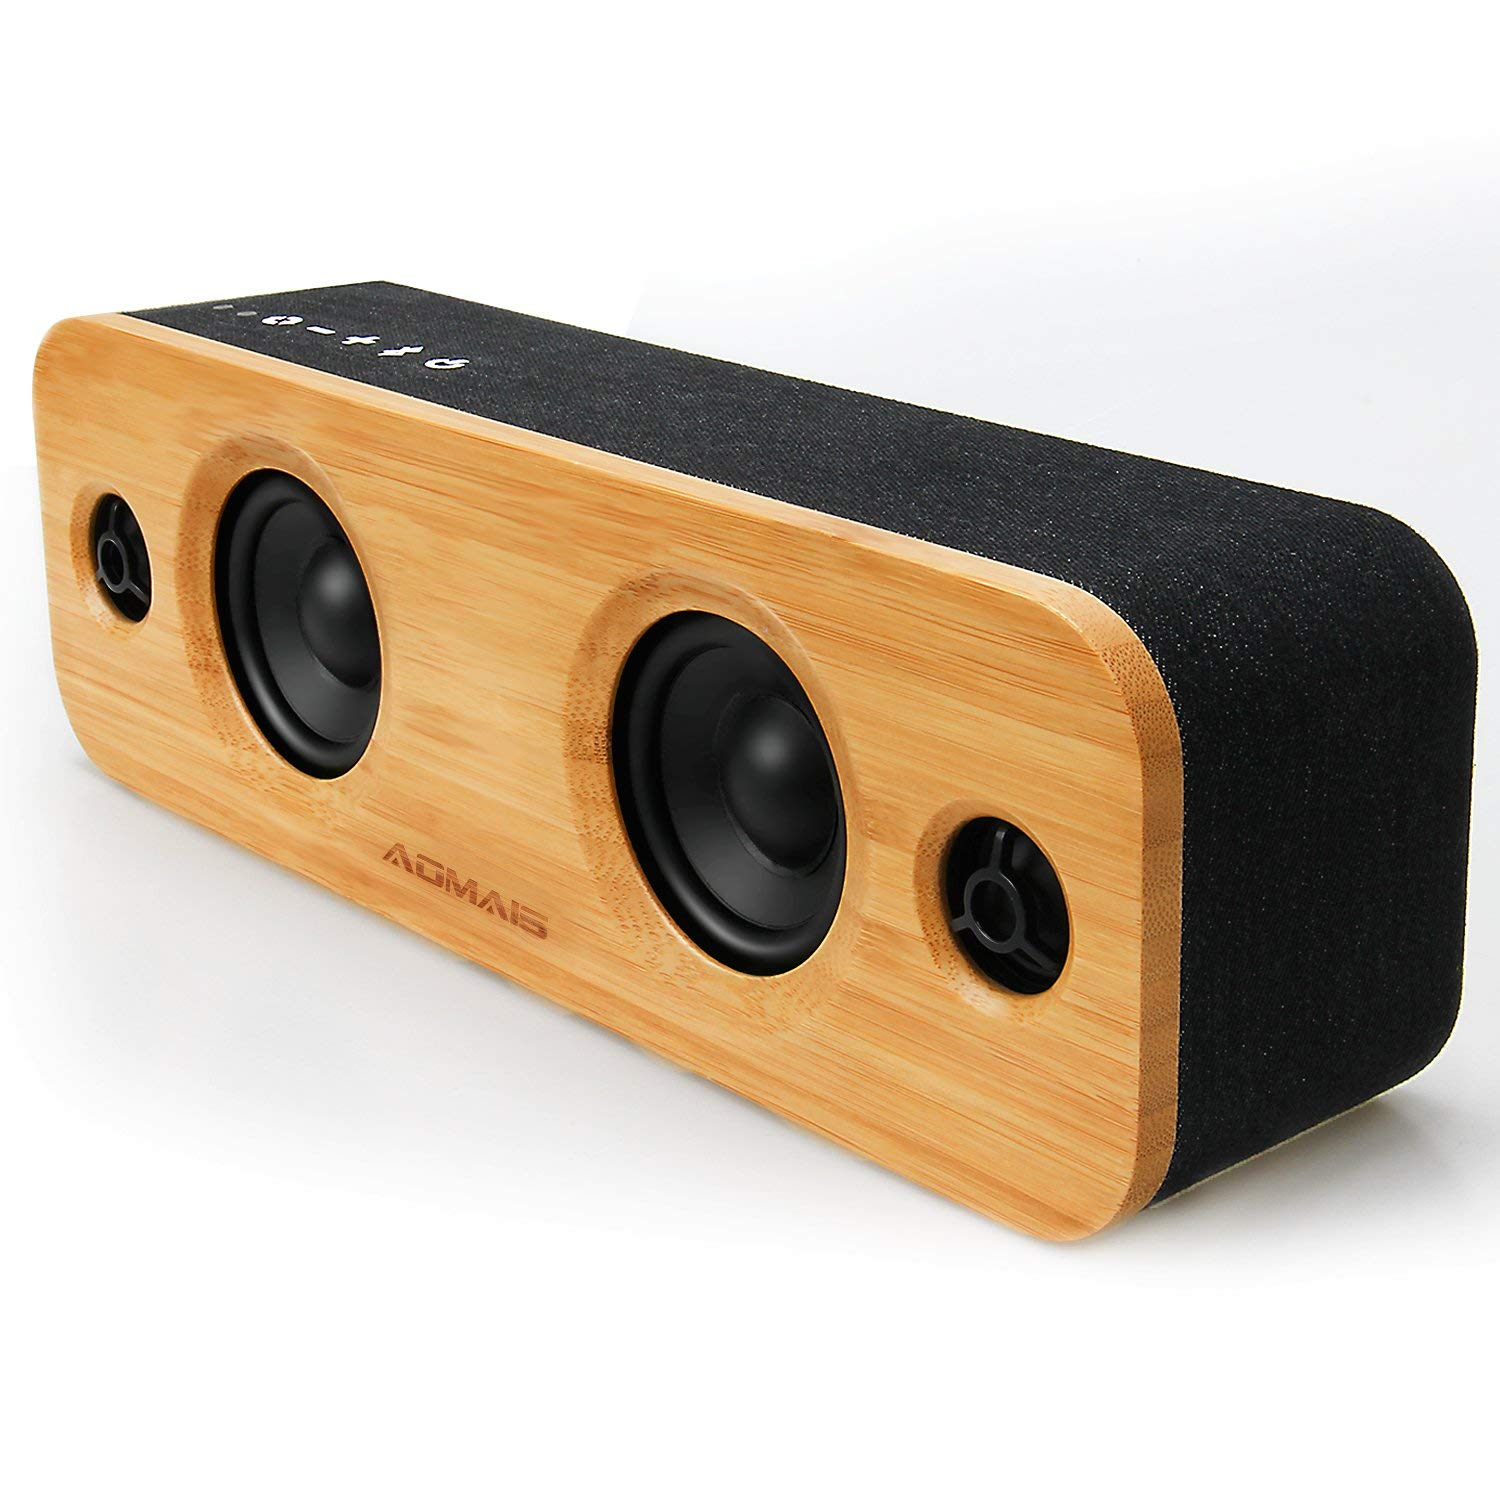 Aomais Life 30w Bluetooth Speakers, Loud Bamboo Wood Home..